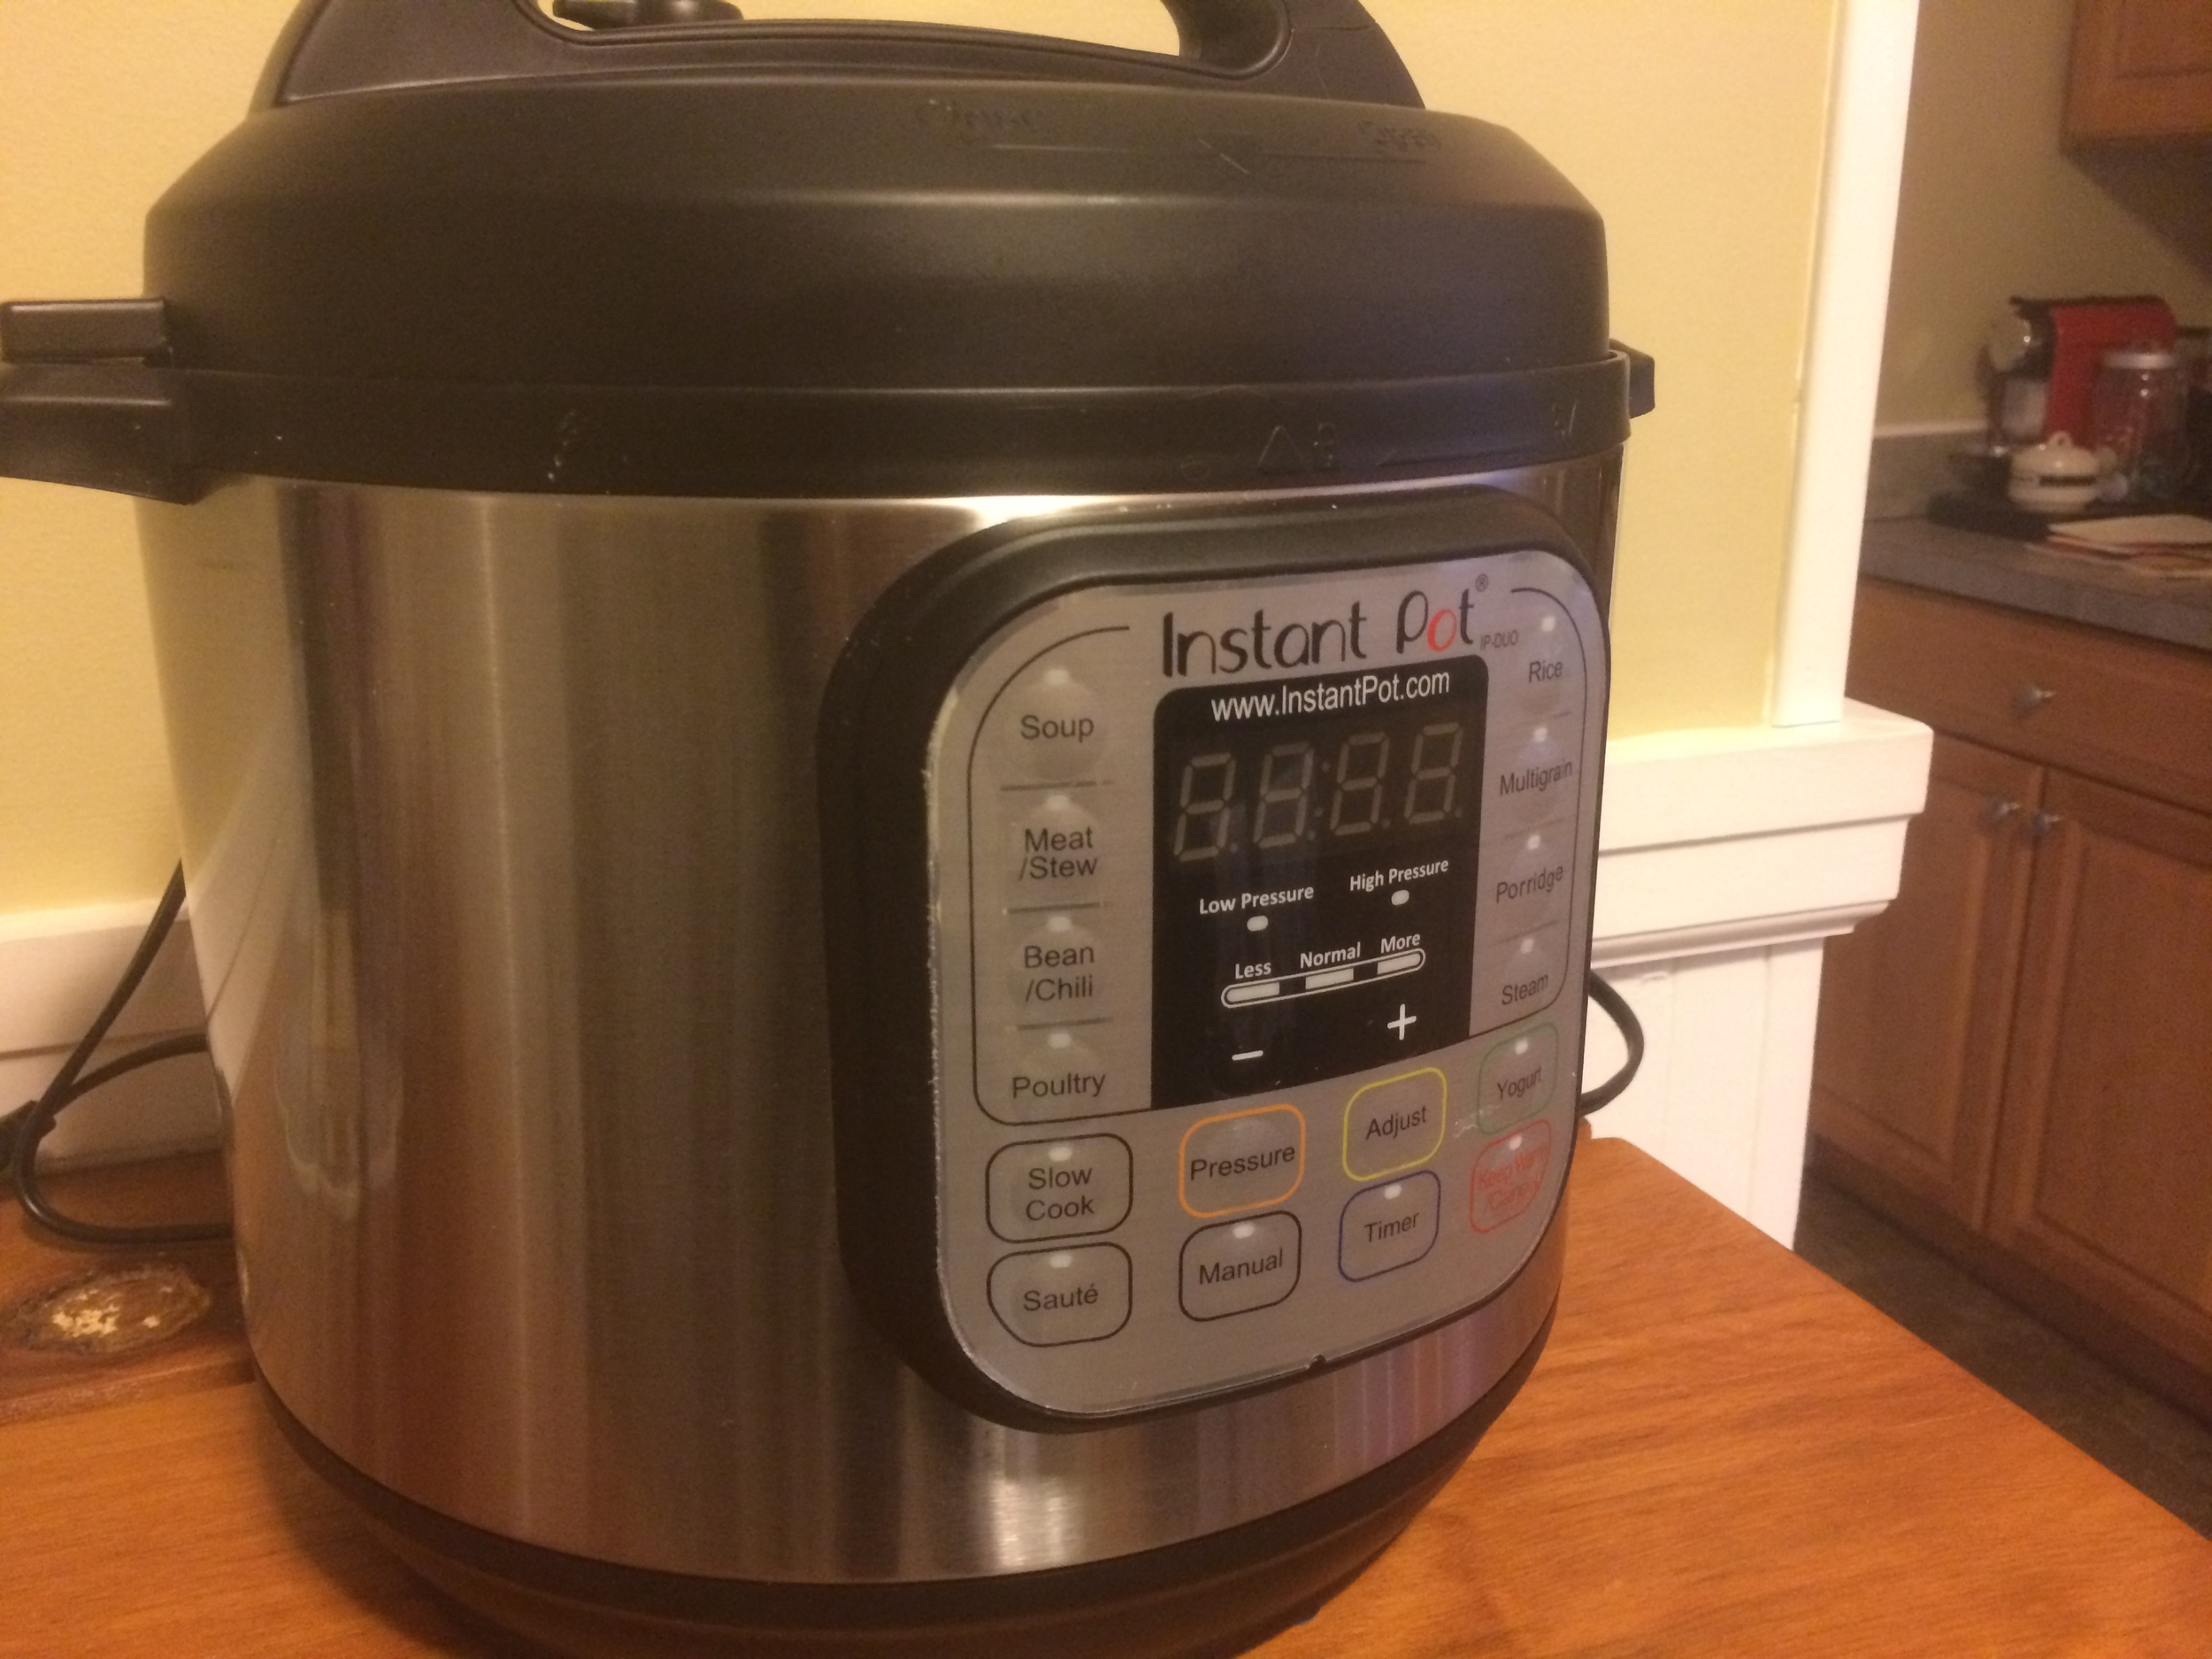 Our newest kitchen gadget - the Instant Pot 7-in-1 Pressure Cooker!